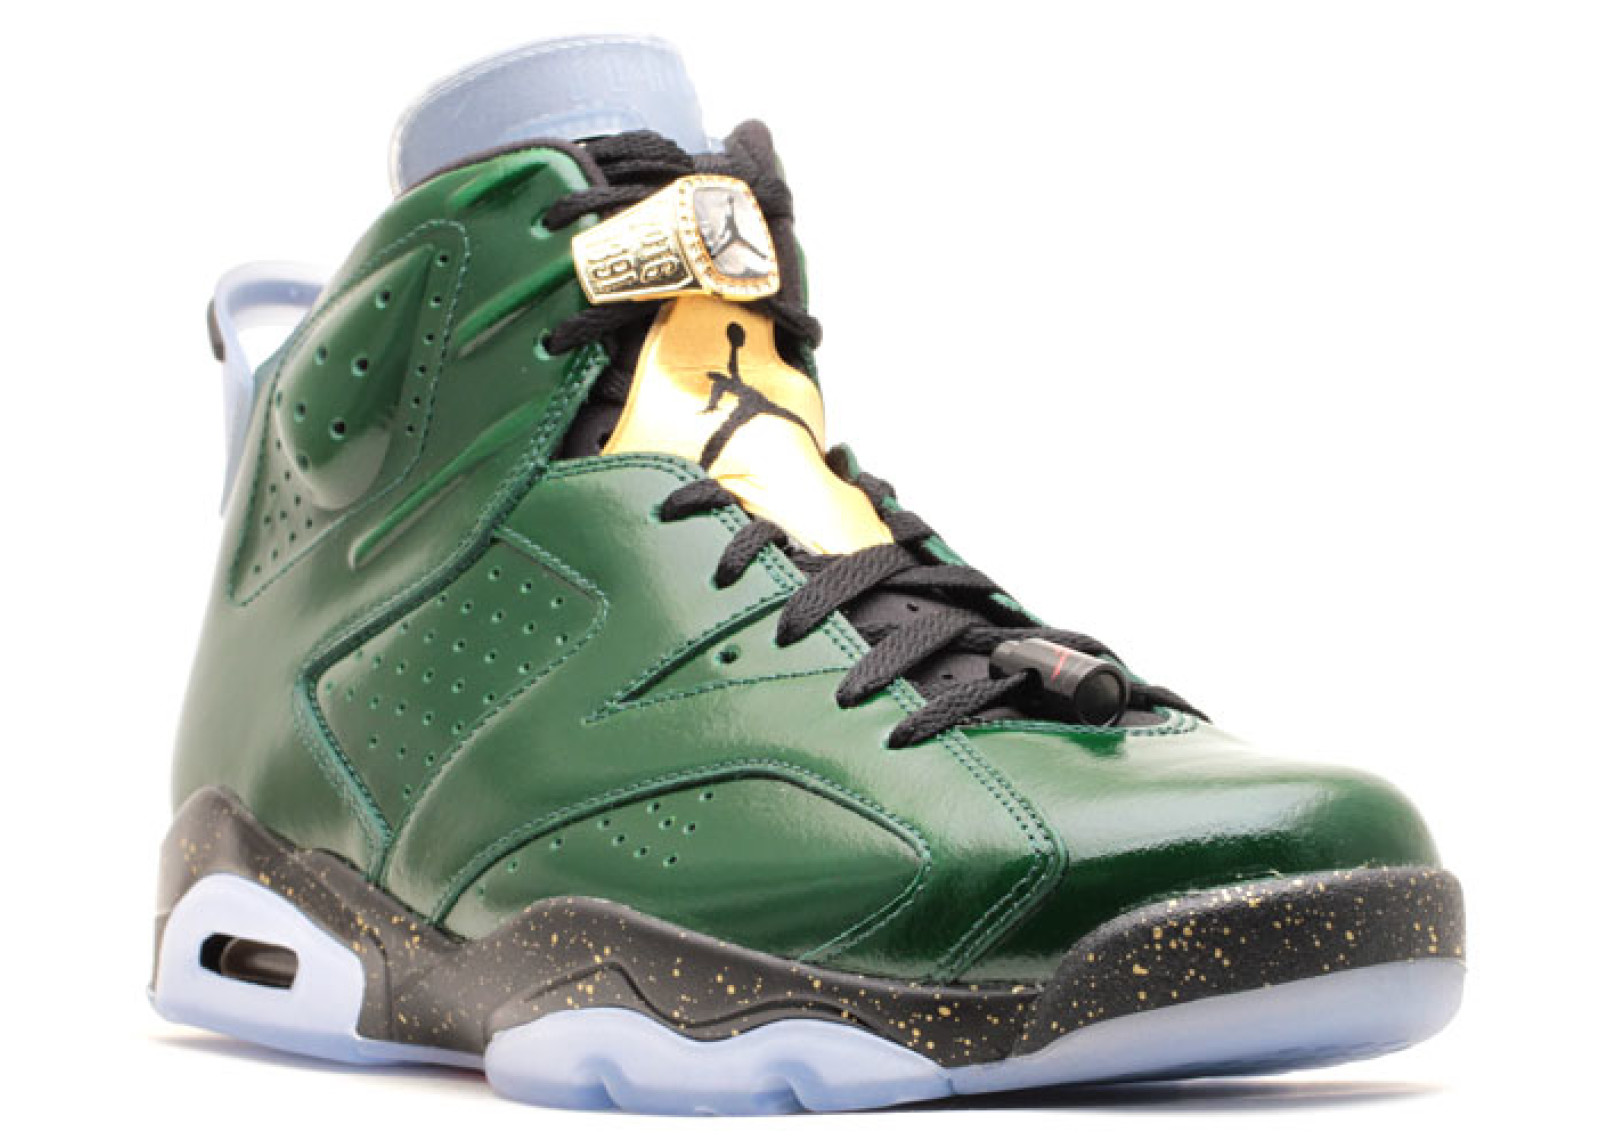 check out 8bdb2 4c88e Air Jordan - Men - Air Jordan 6 Retro  Champagne  - 384664-350 - Size 10